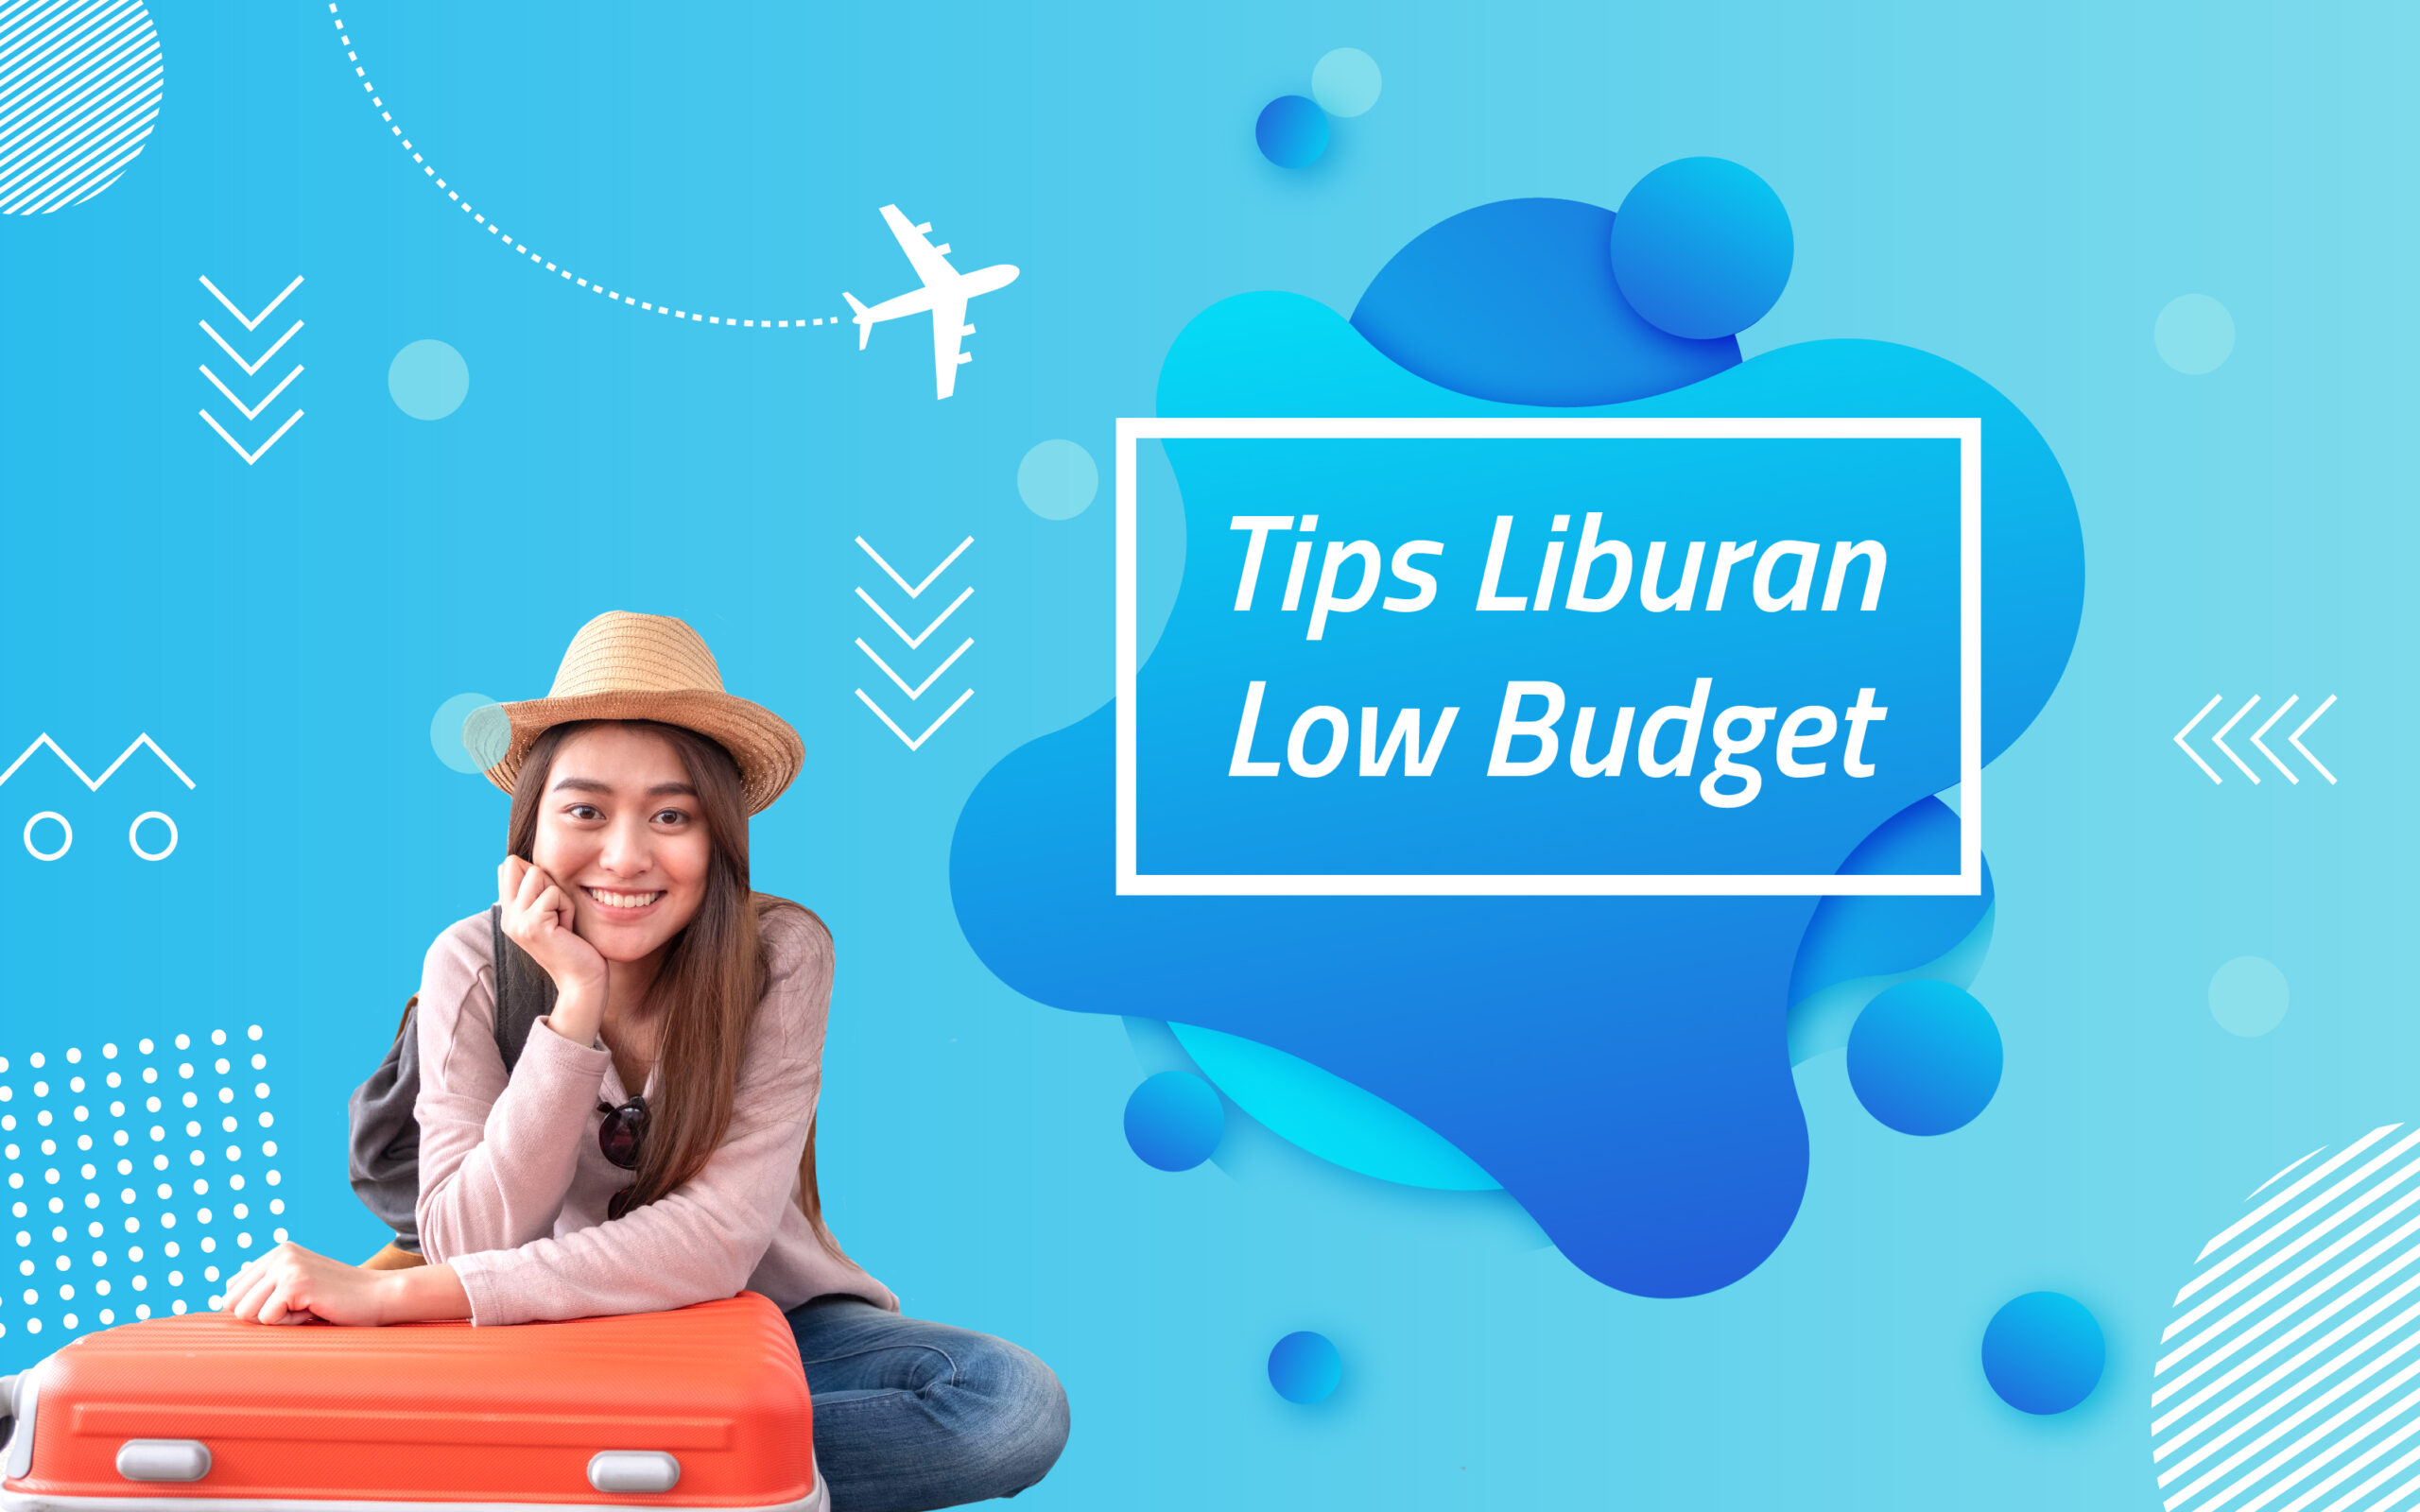 Tips Liburan Low Budget